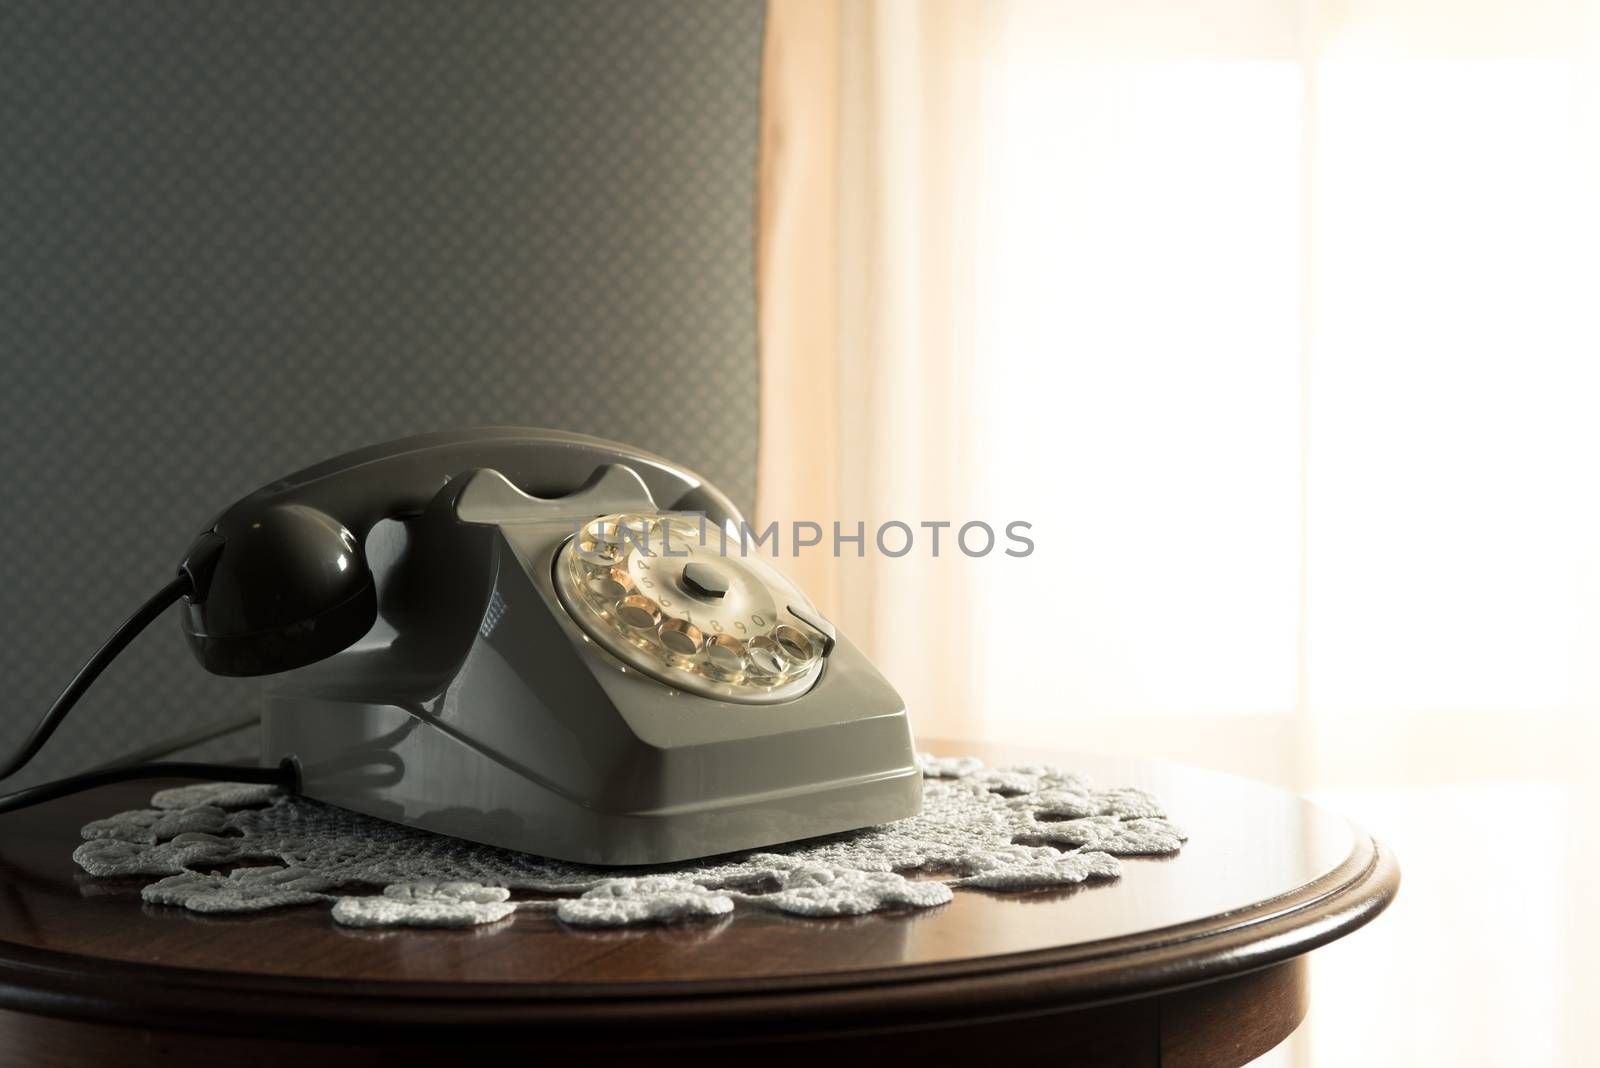 Vintage telephone on doily and wooden table in the living room.